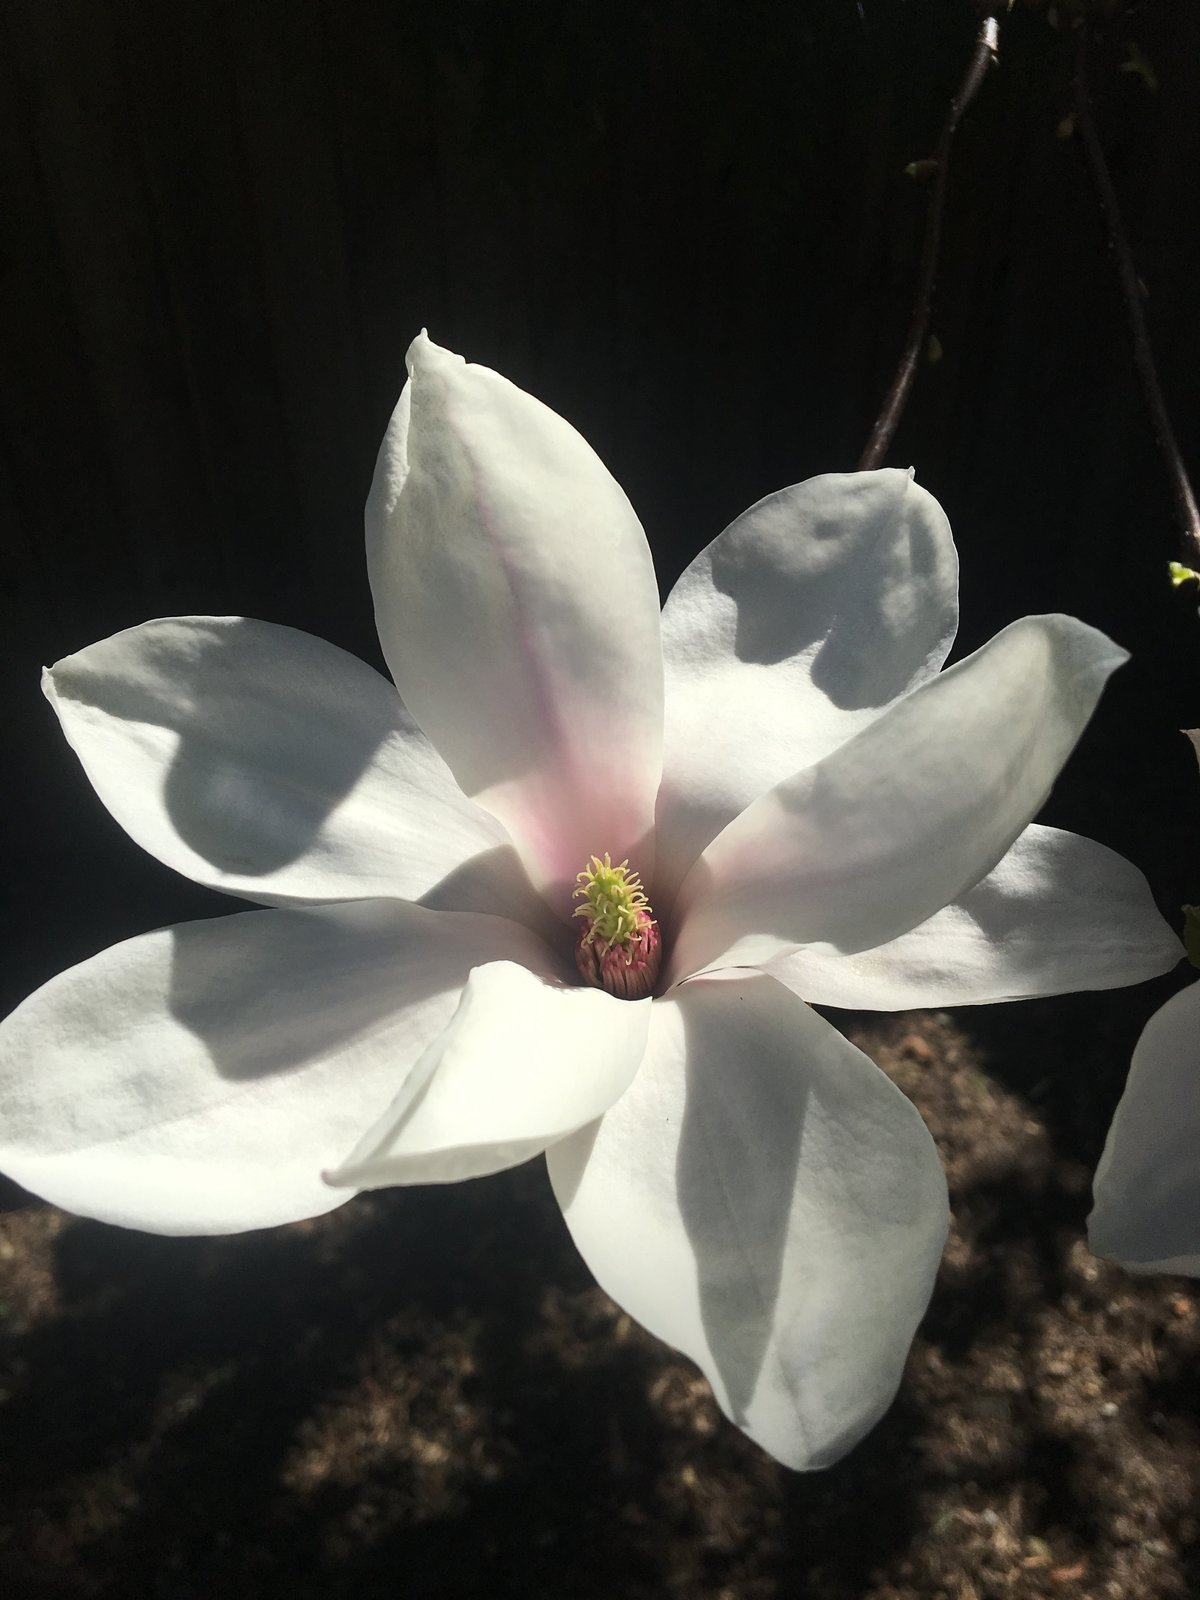 Saucer Magnolia bloom